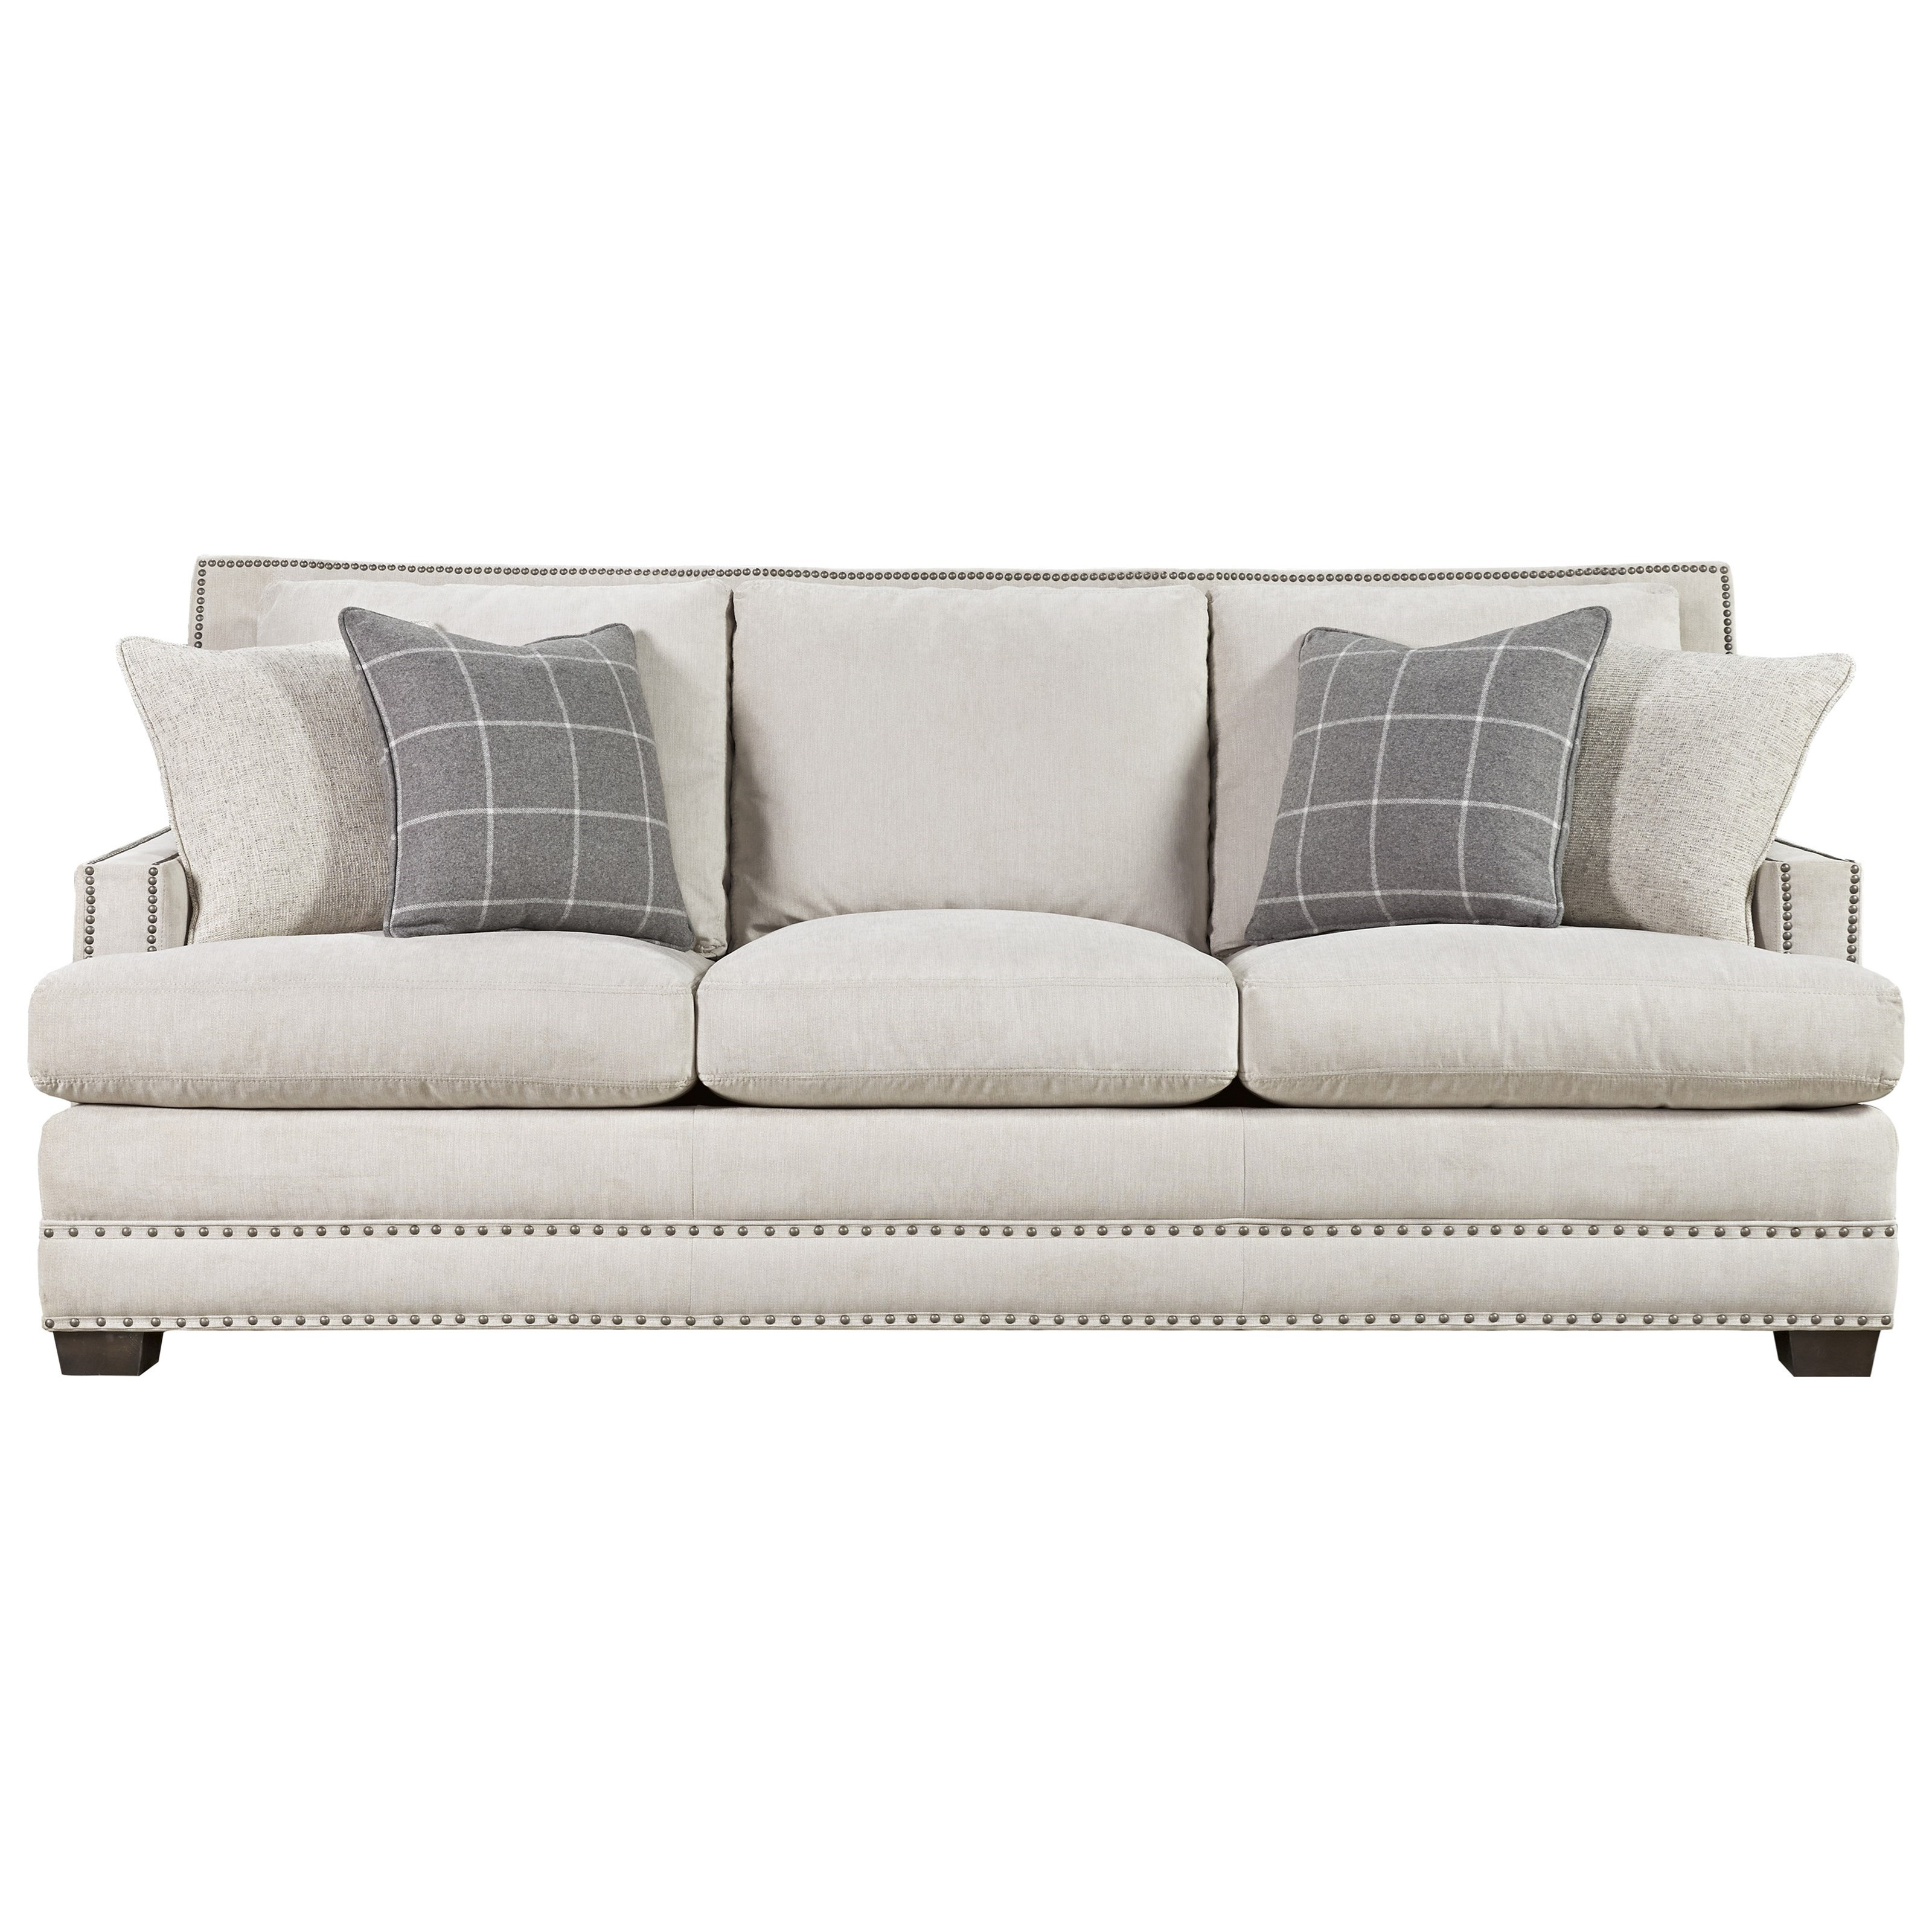 Franklin Street Sofa by Universal at Baer's Furniture